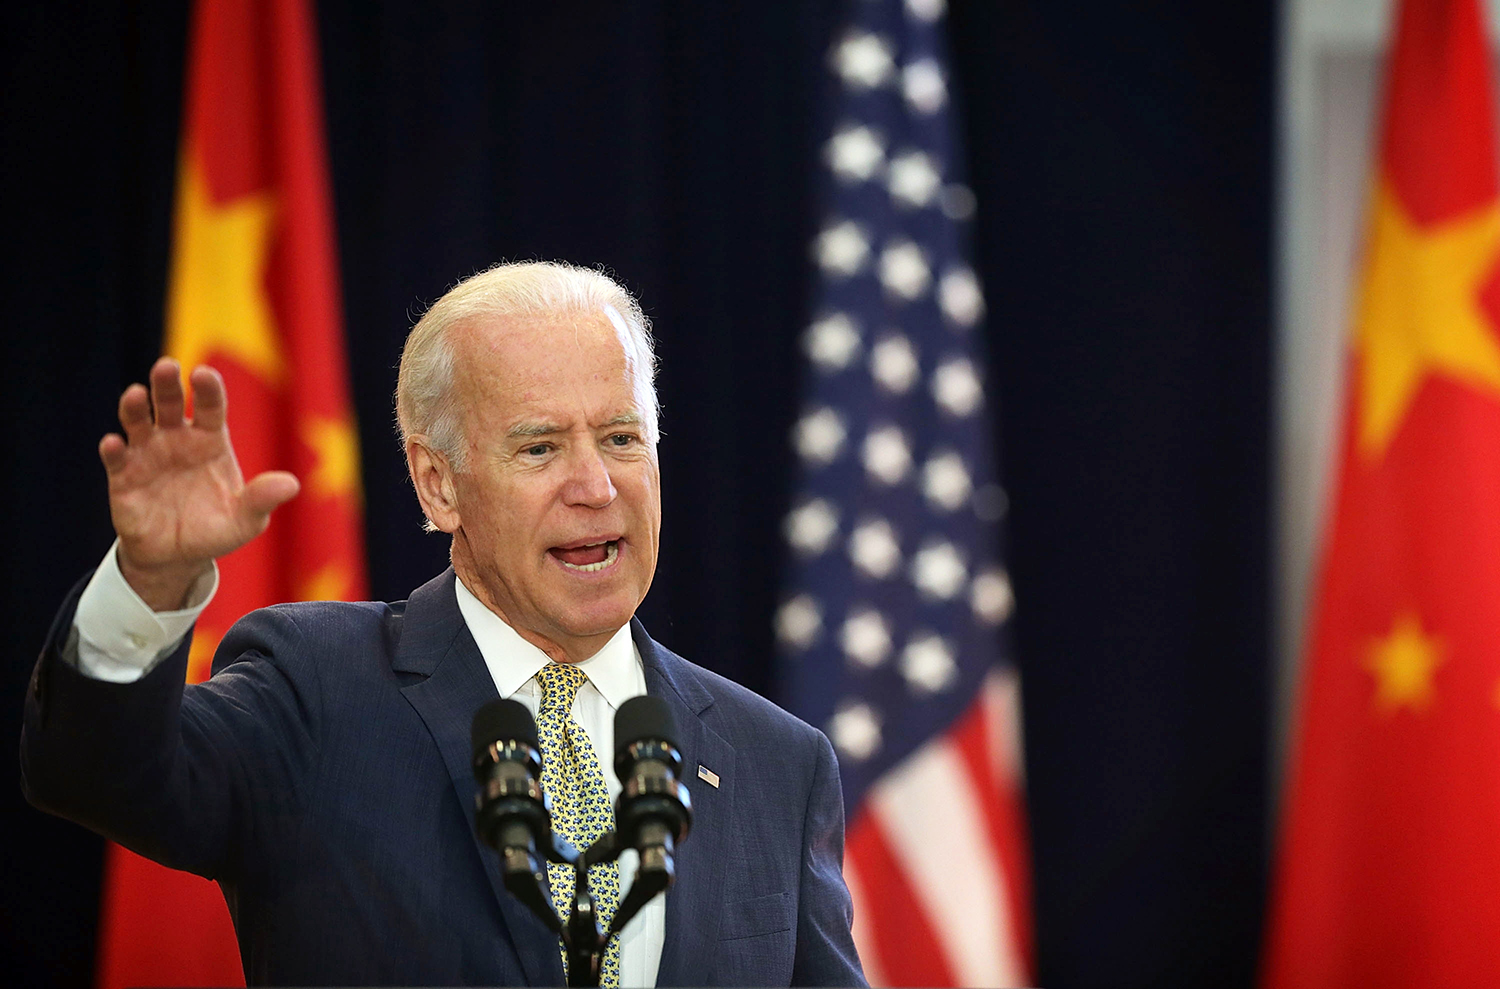 U.S. Vice President Joseph Biden delivers remarks during the joint opening session of the Strategic and Economic Dialogue with China in Washington, D.C., on June 23, 2015.